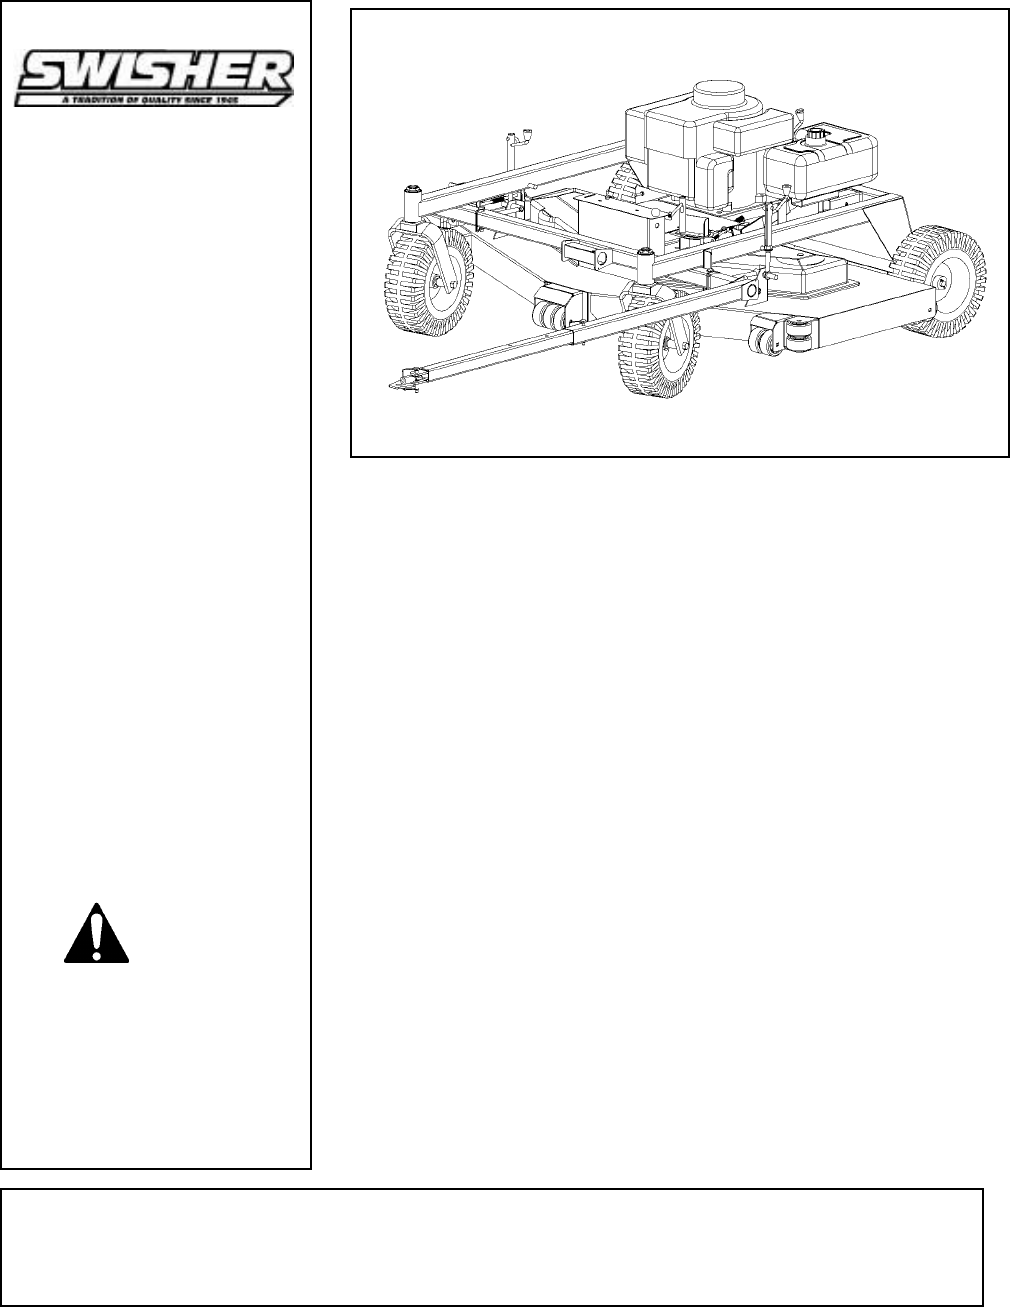 wiring diagram for swisher t1260 read all wiring diagram Swisher Pull Behind Wiring-Diagram